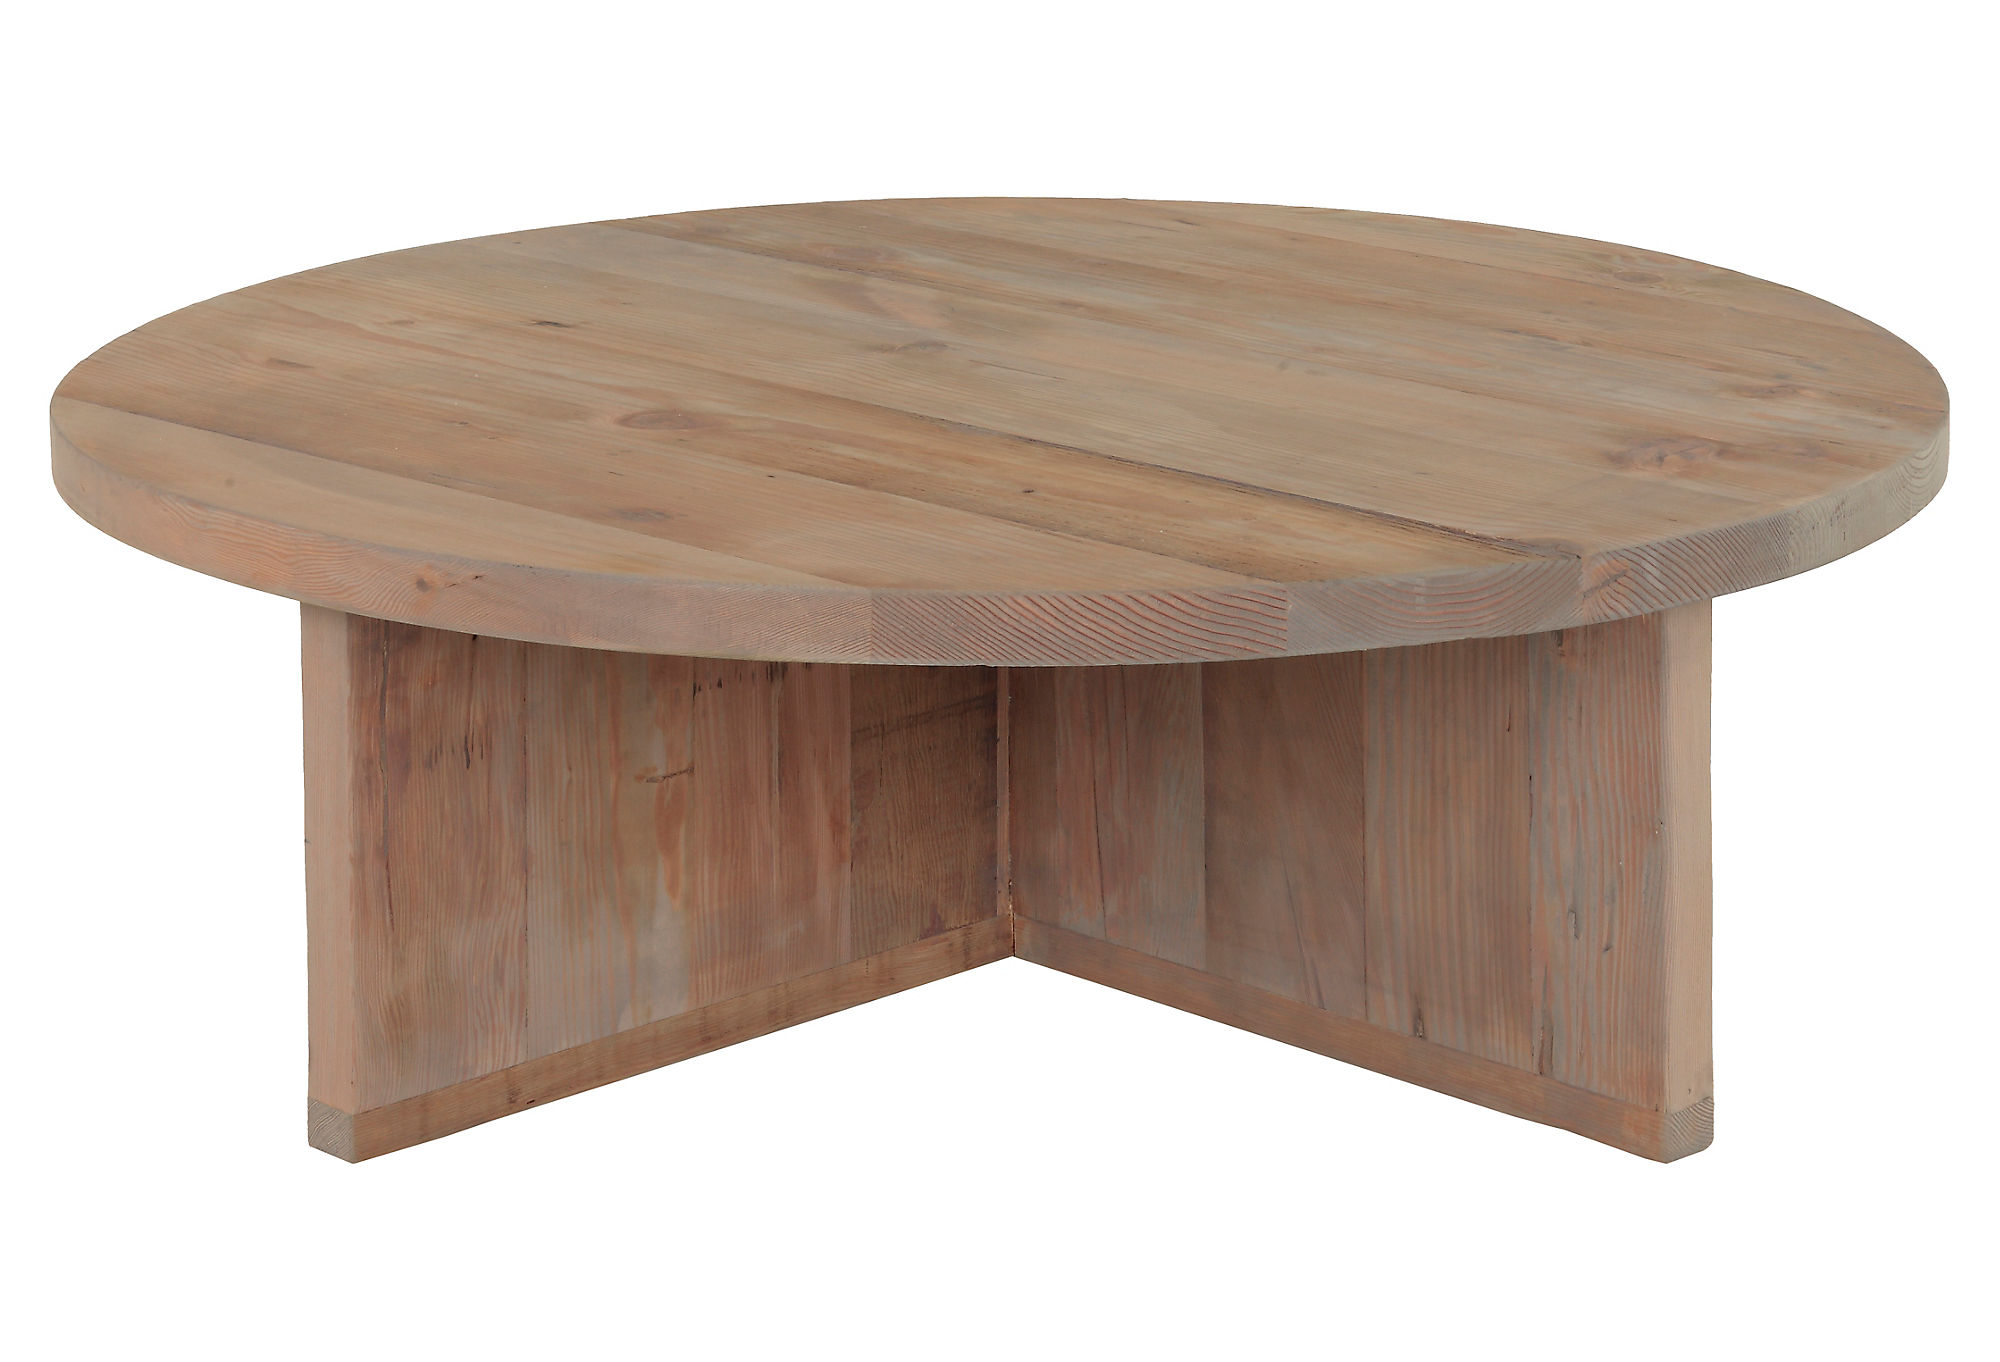 Matro Wood Coffee Table by Urban Outfitters